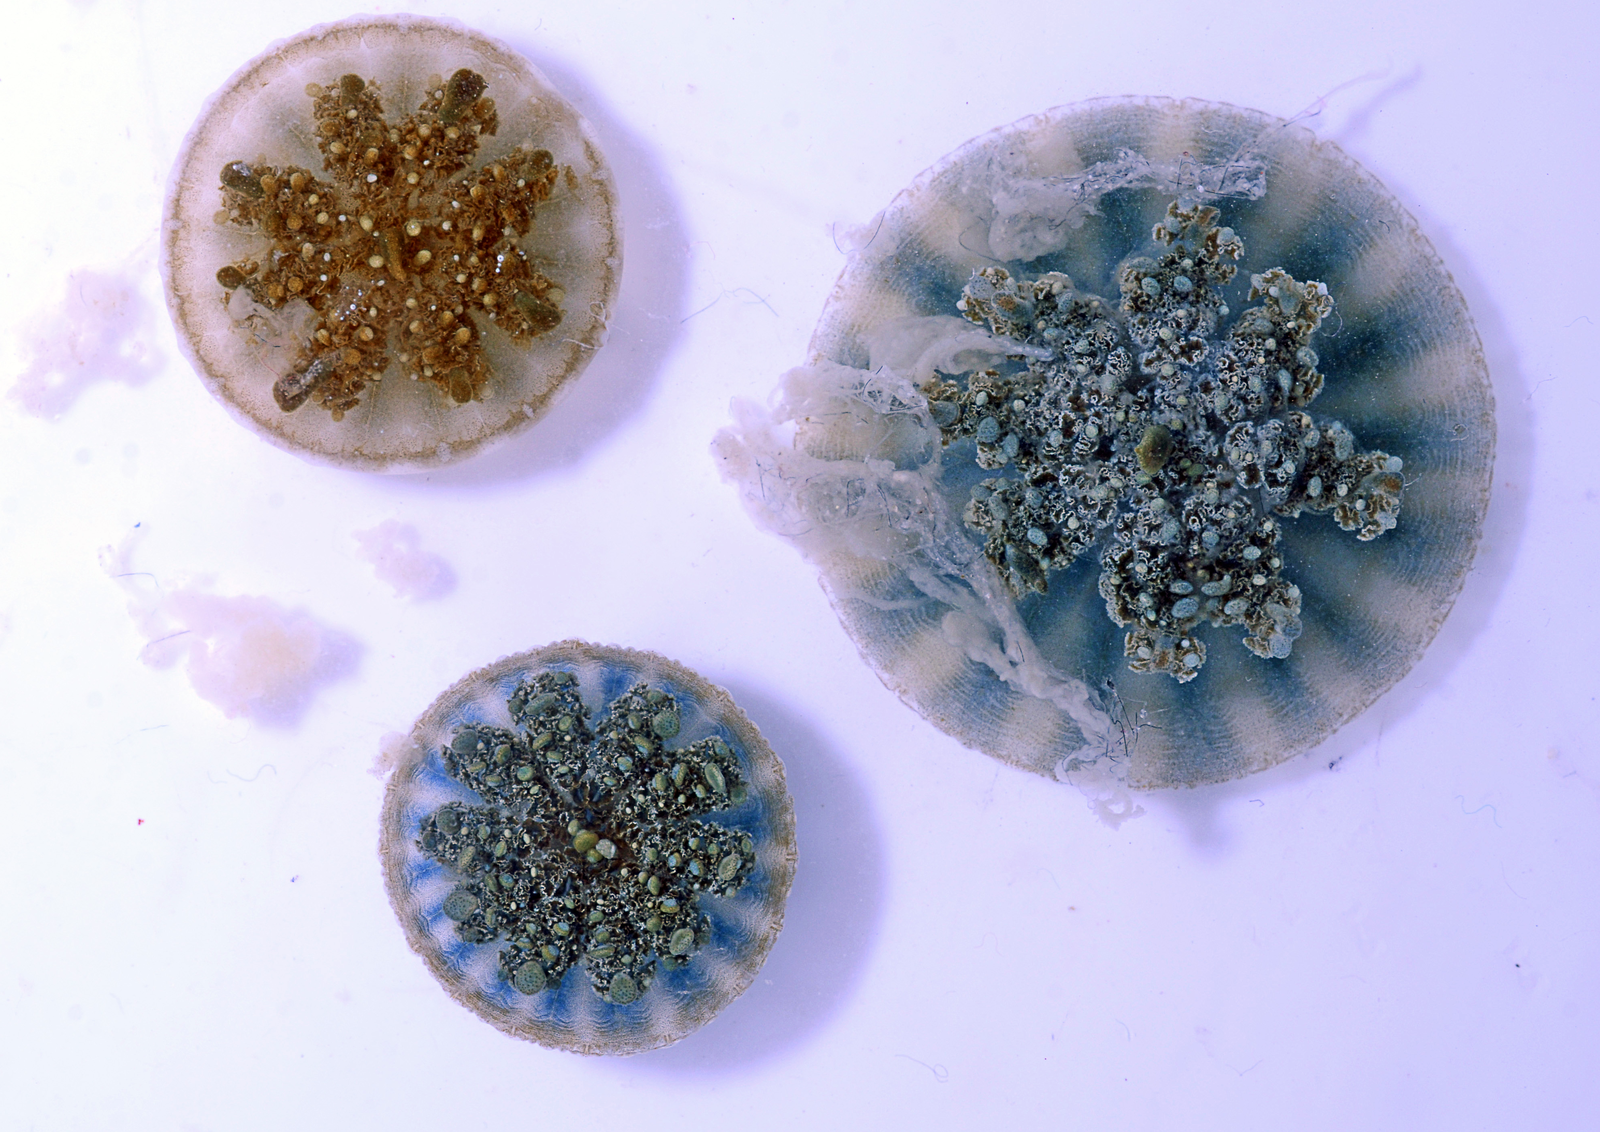 Three Cassiopea, or upside-down jellyfish